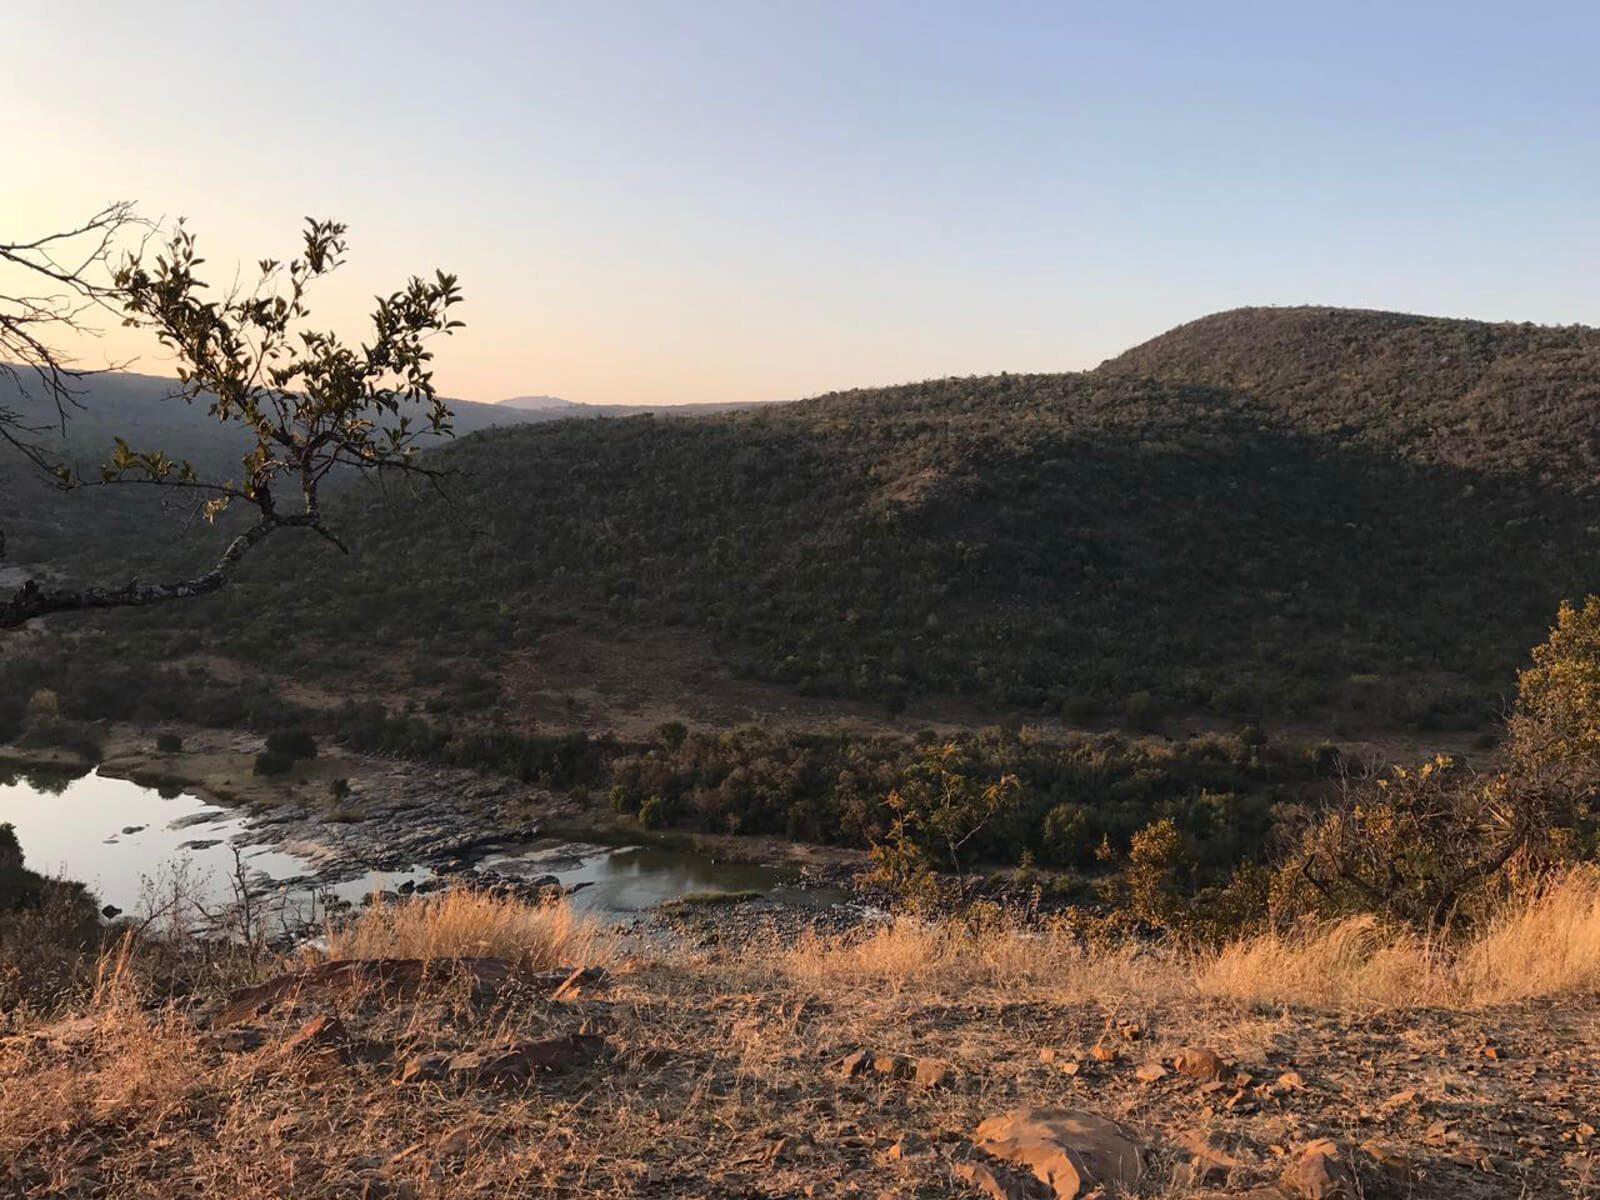 Fugitives' Drift - the only escape route from Isandhlwana, though only 55 survivors of the battle managed to cross to safety